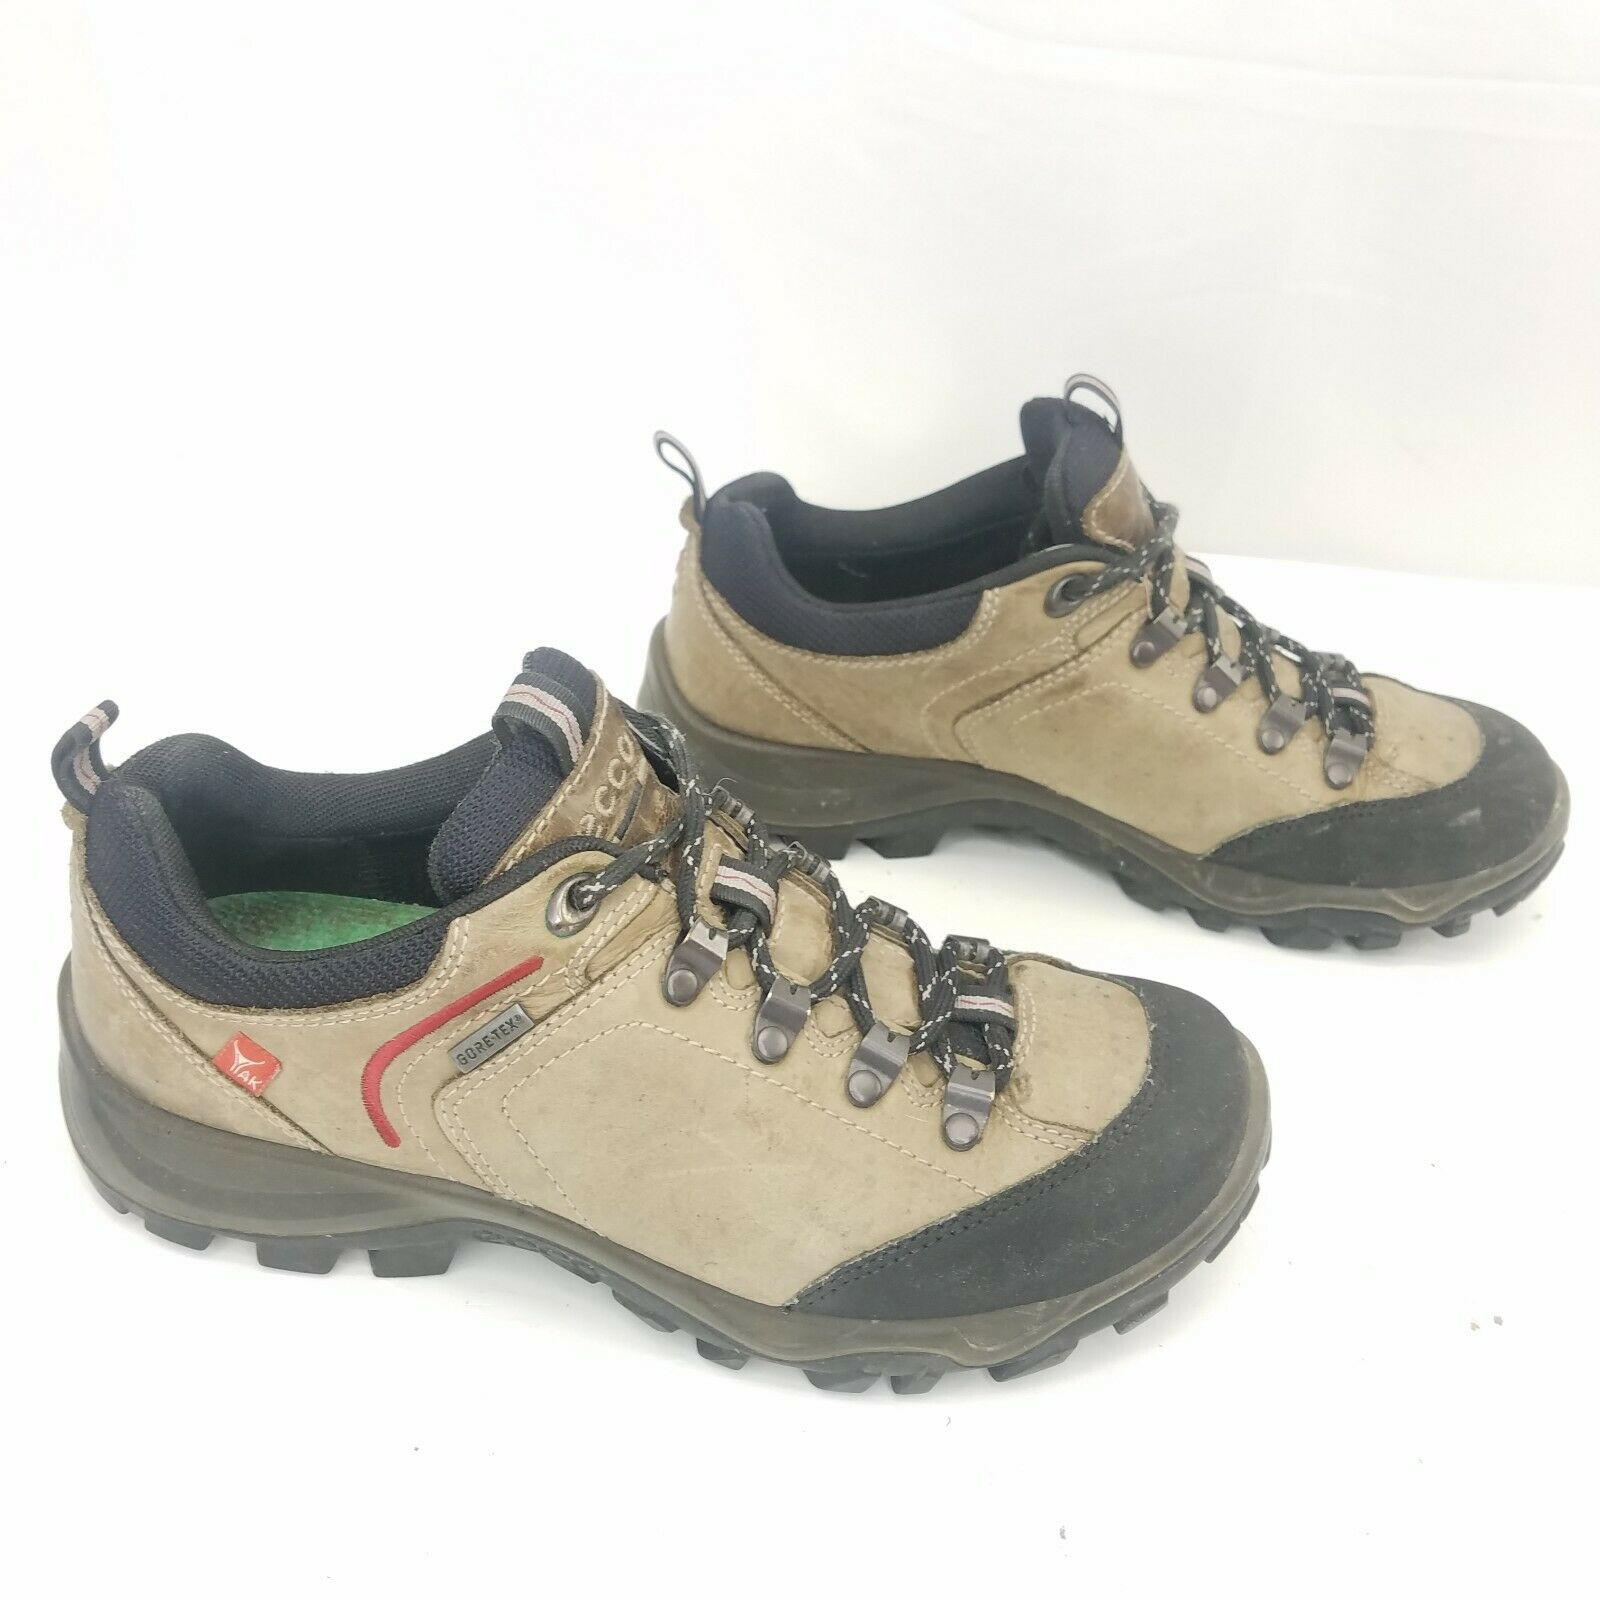 Ecco Ulterra Shoes Goretex Yak Hiking Boots Lace Up Sneakers Mens Size 39 US 6.5